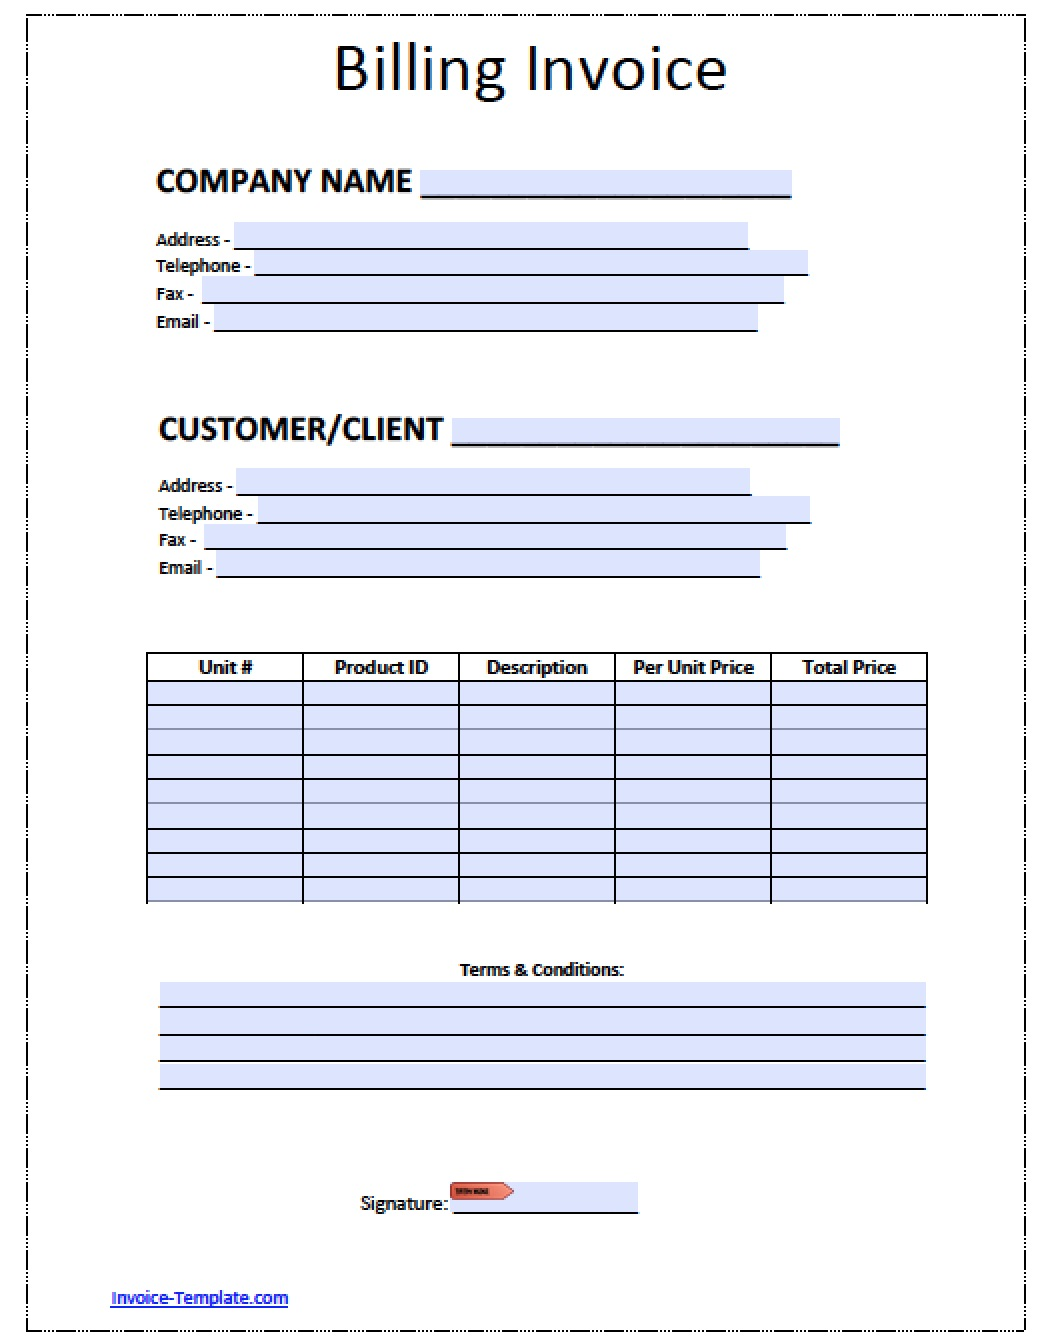 Free Billing Invoice Template Excel PDF Word Doc - Car sale invoice template word for service business